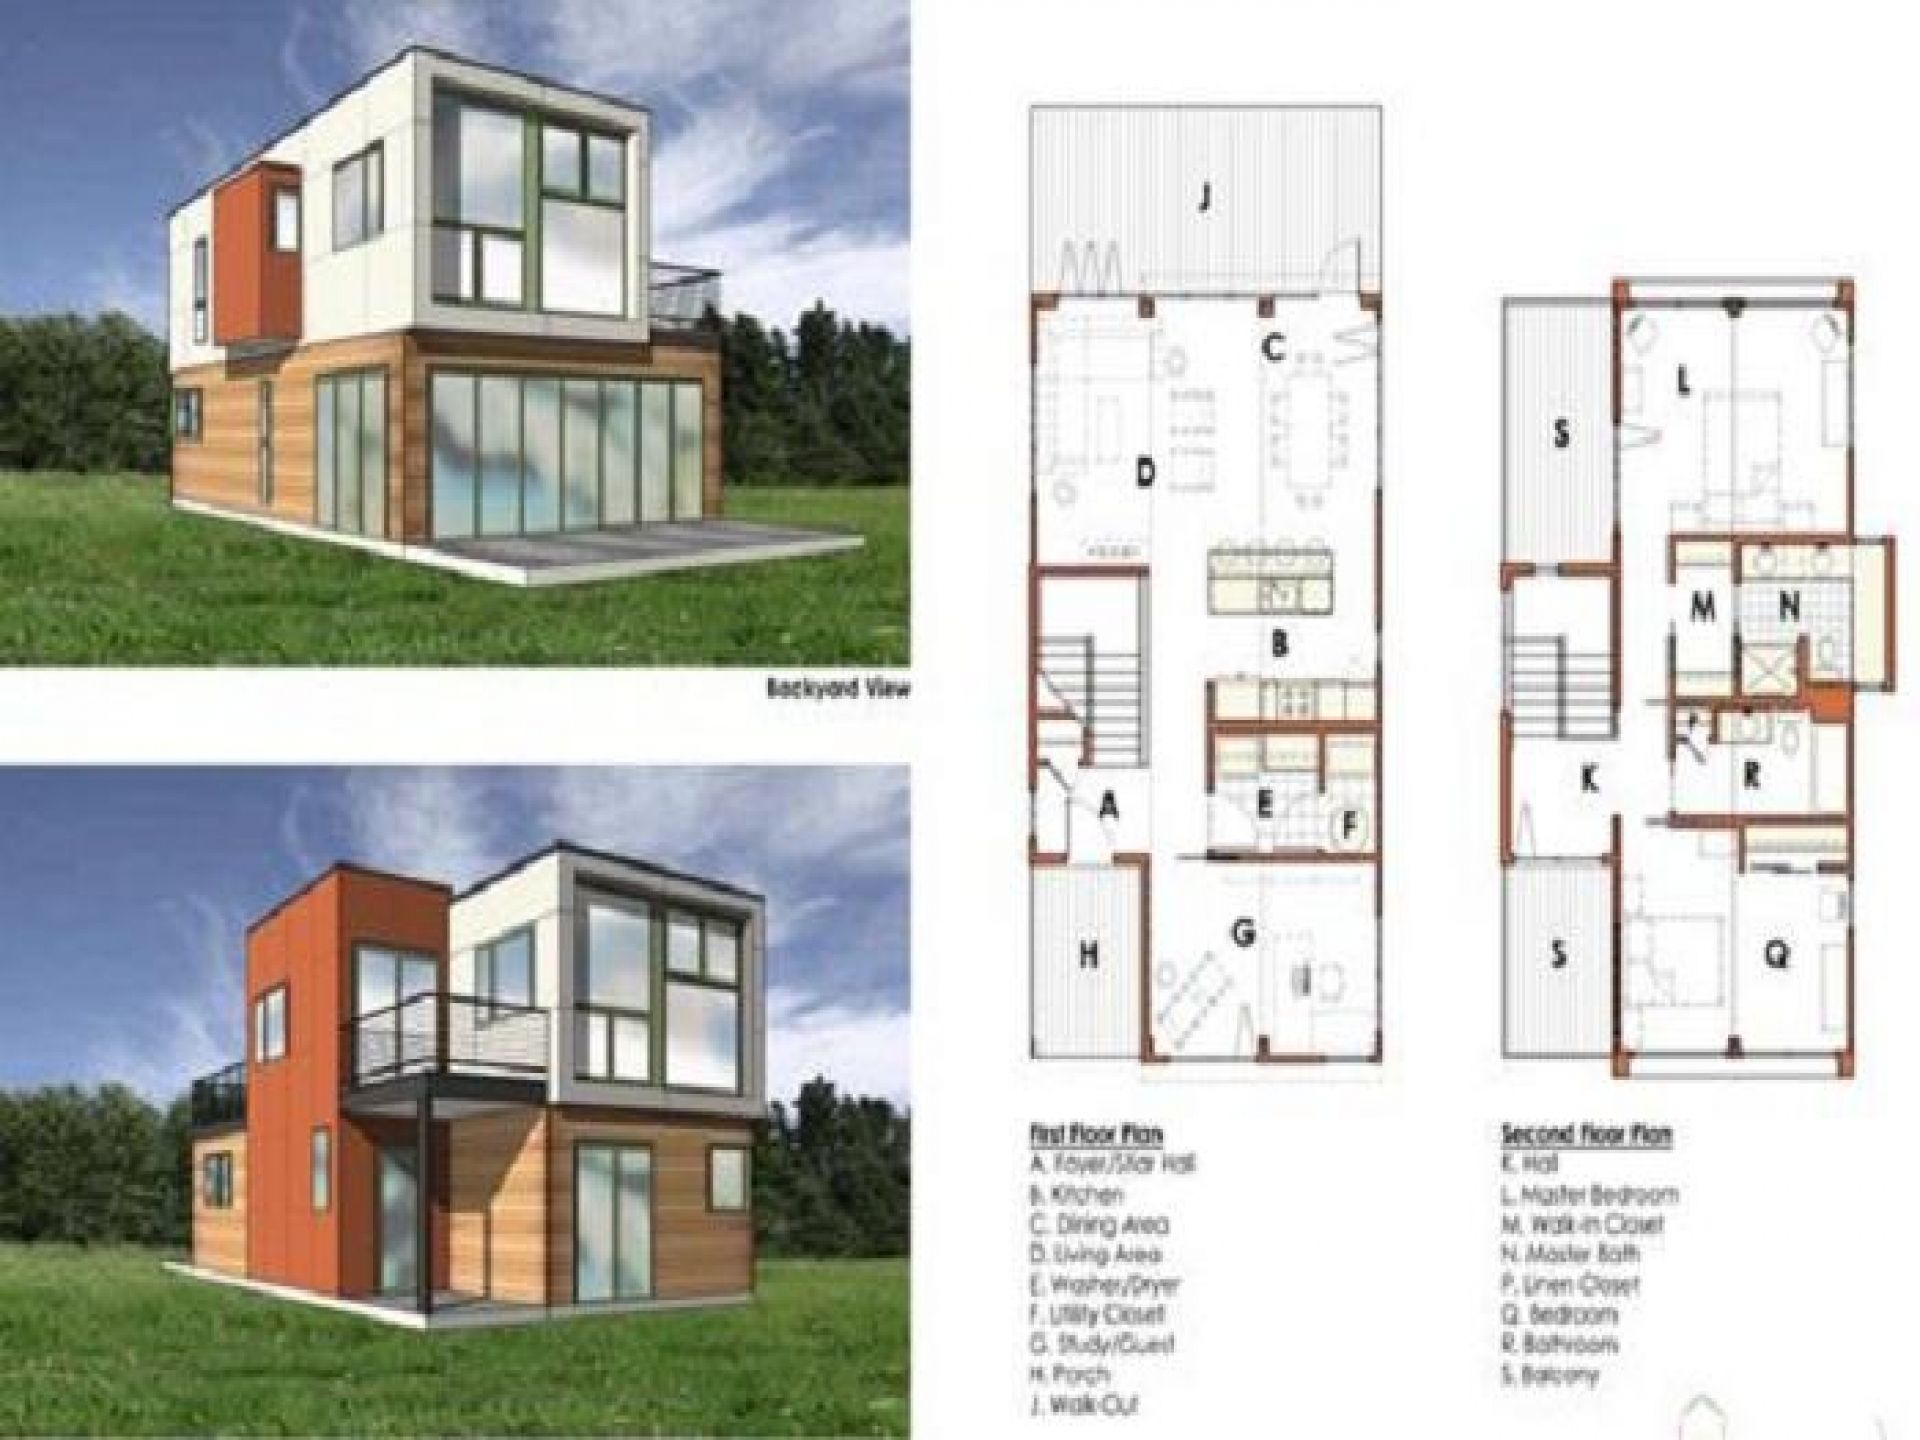 Container Homes Design Plans Property container home design 2: container home floor plans:,container